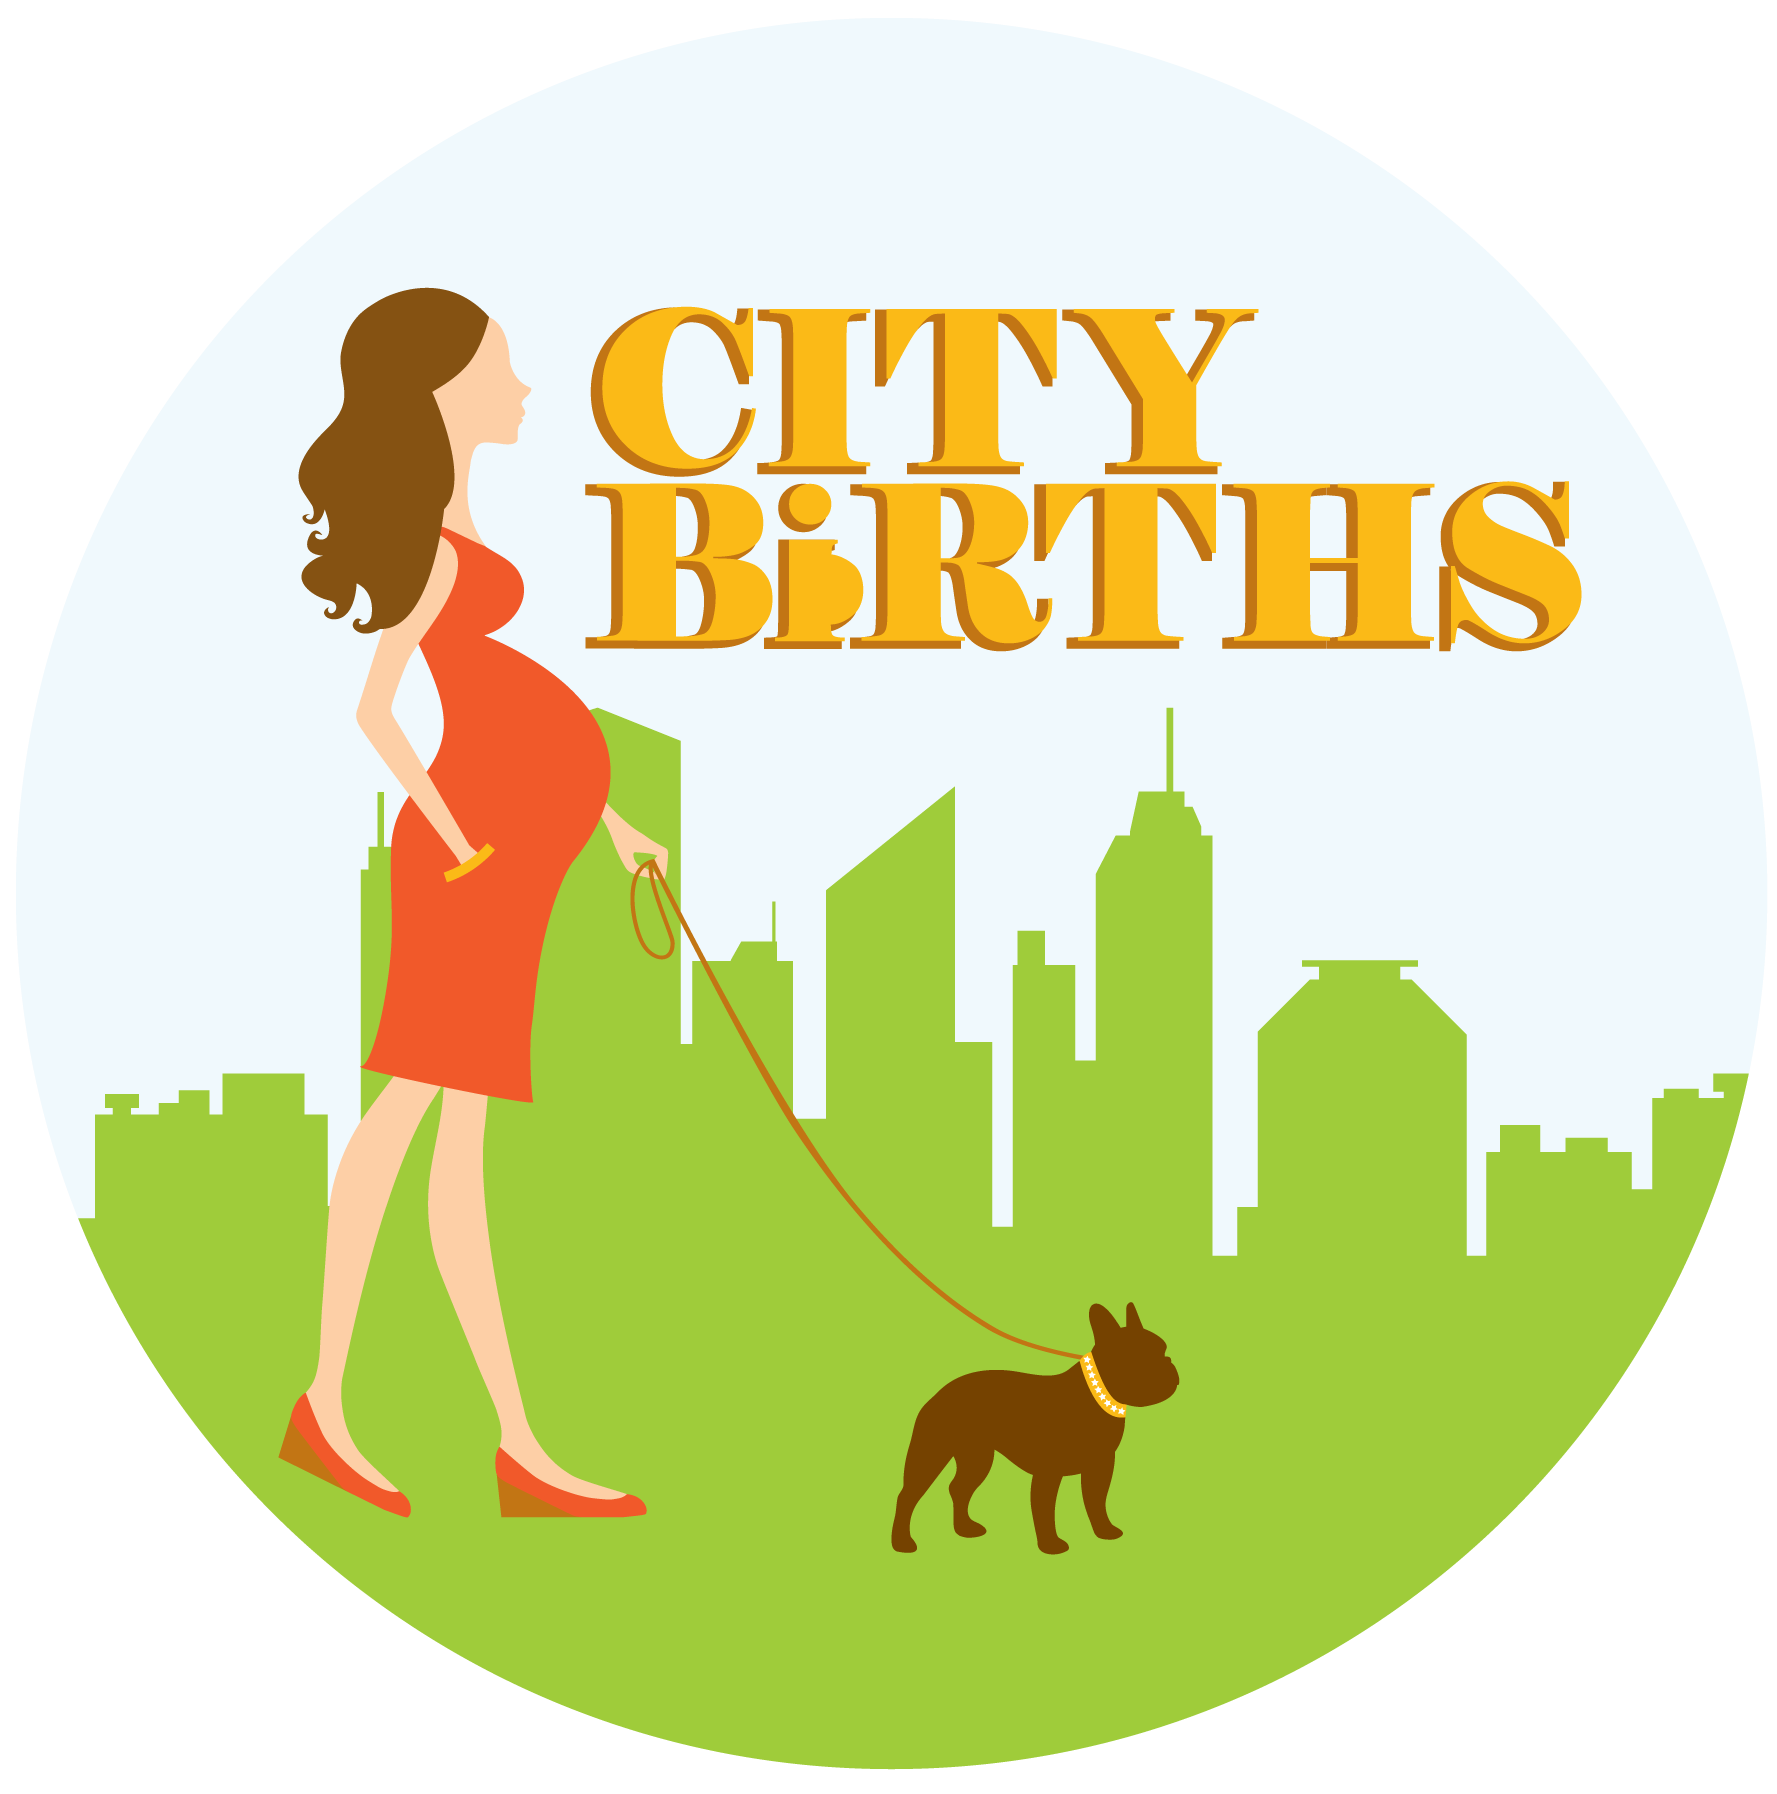 Evidence clipart unbiased. City births new york